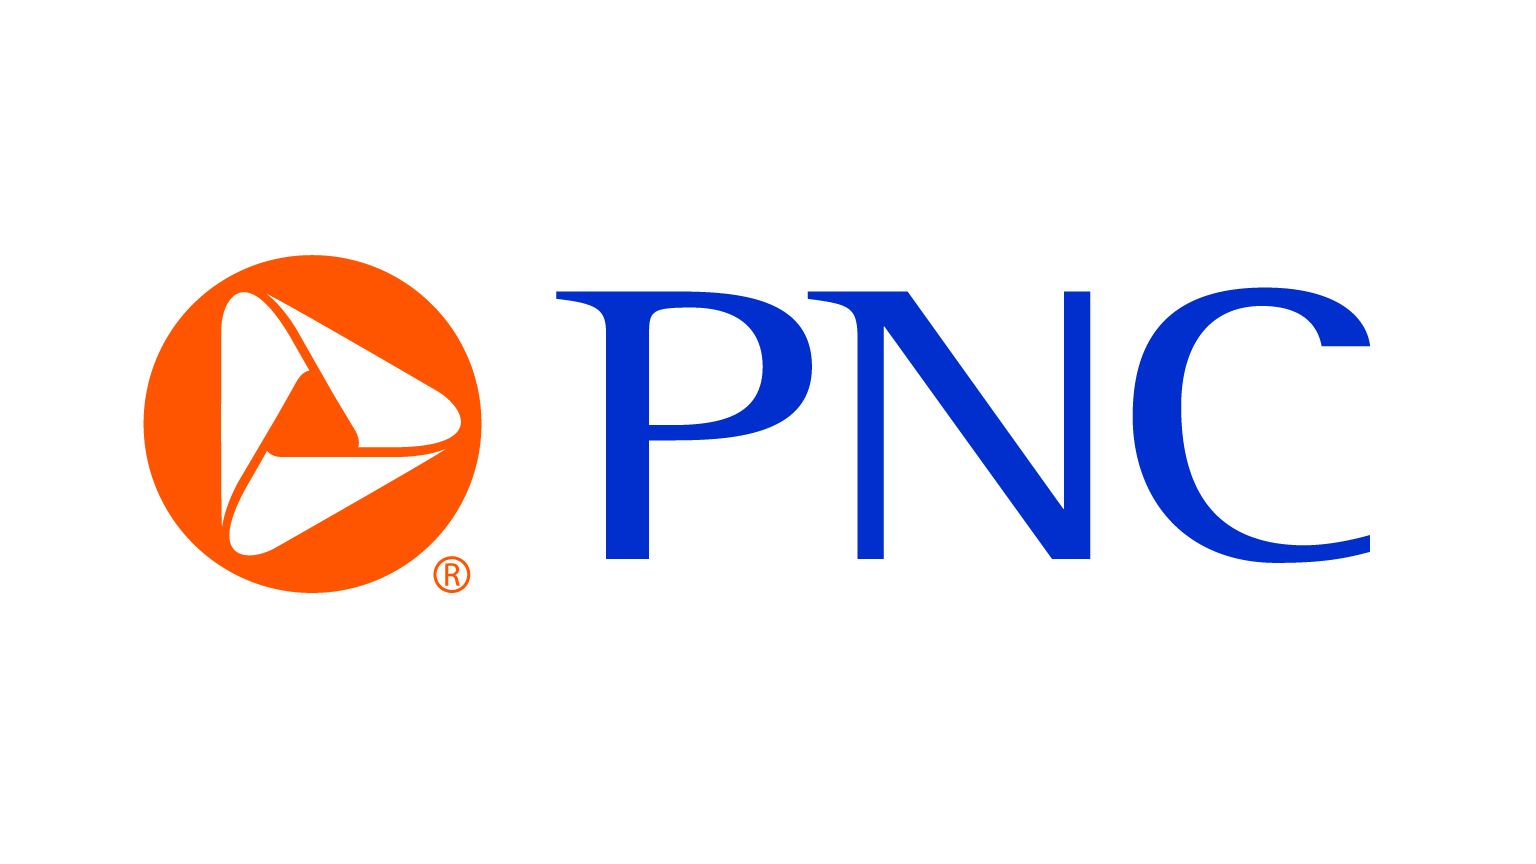 PNC Financial Services Group logosu